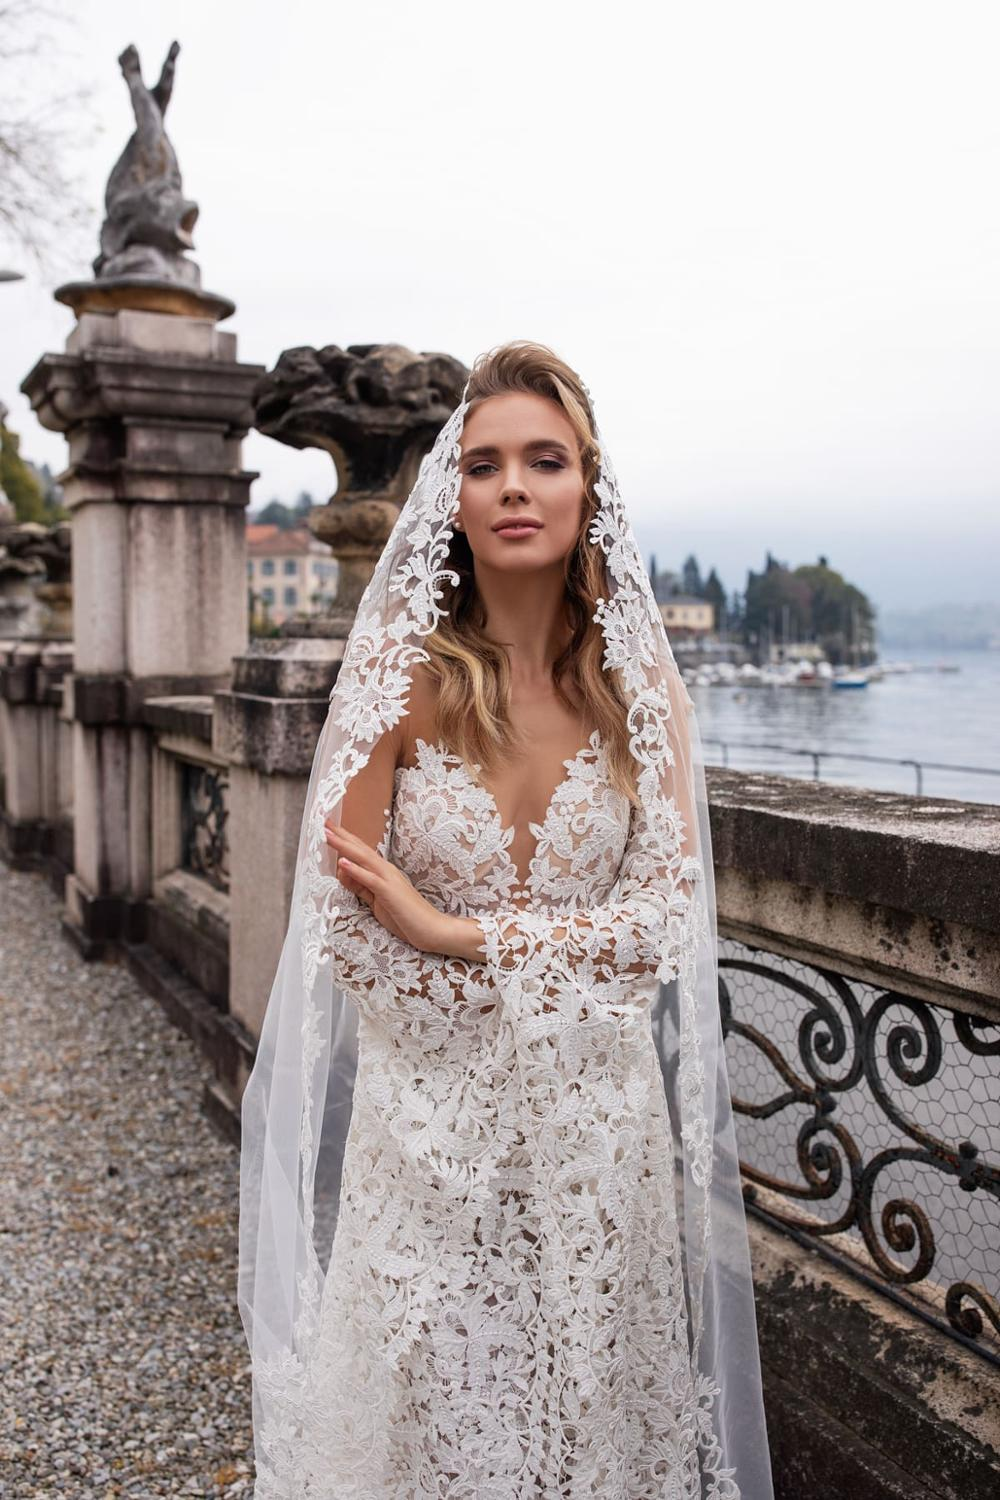 Image 2 - New Arrival Fashion Lace Mermaid Wedding Dresses With Flare Sleeves 2019 Backless Sweep Train Bride Dress Bridal Wedding Gowns-in Wedding Dresses from Weddings & Events